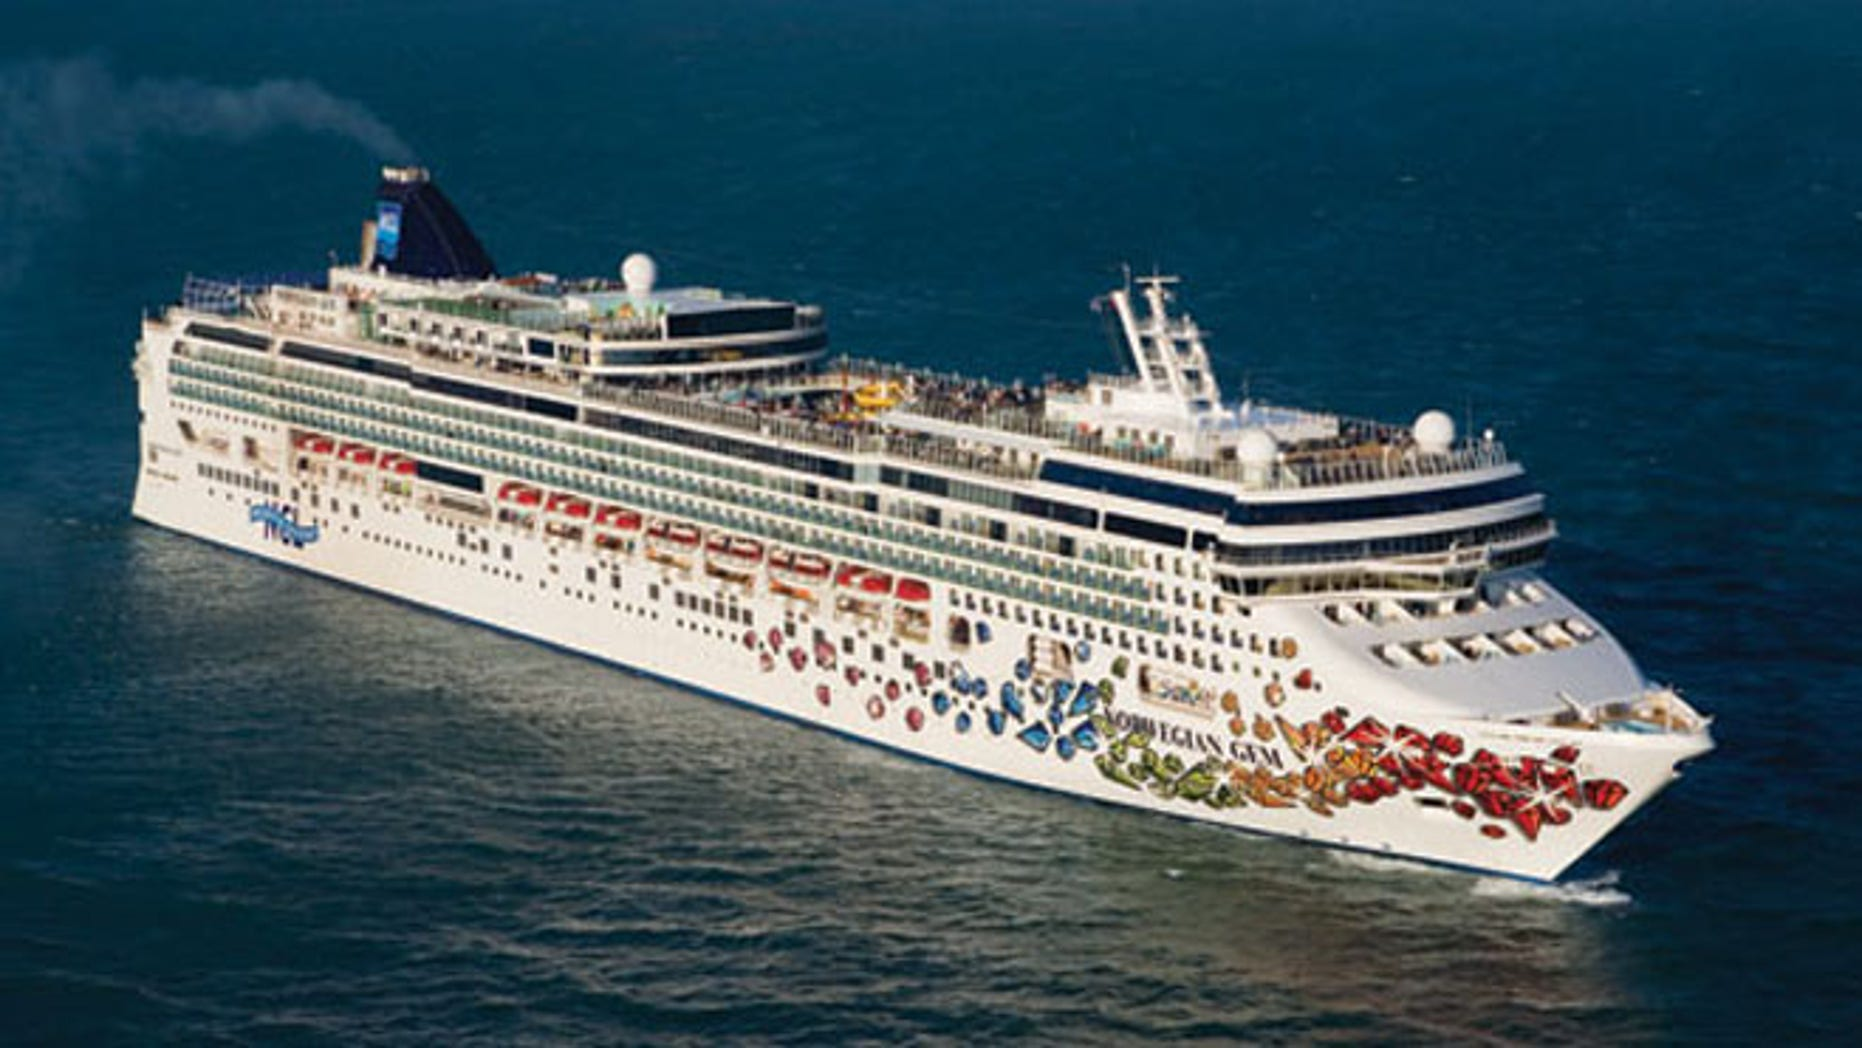 Norwegian Cruise Line confirmed the death of a 10-year-old girl in a statement.